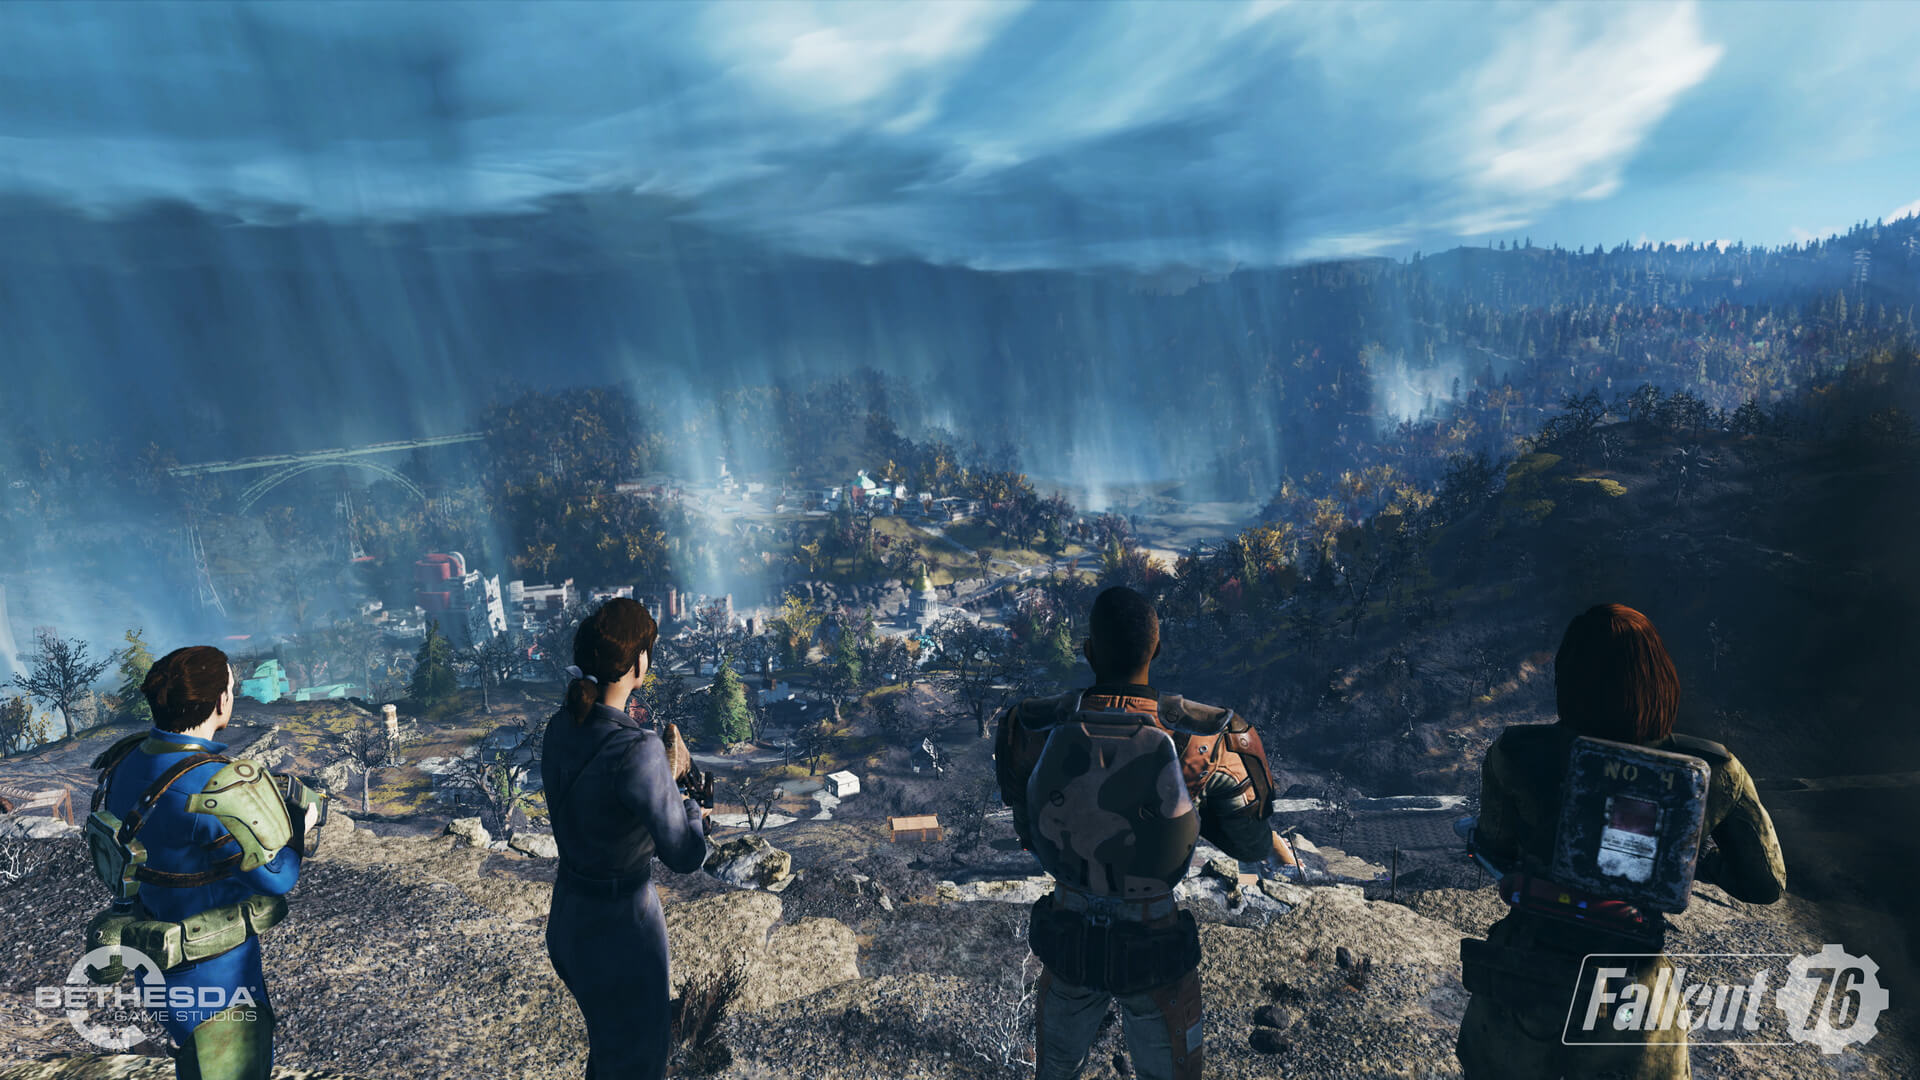 Fallout 76 February 25th Update released, brings stability improvements, full patch notes